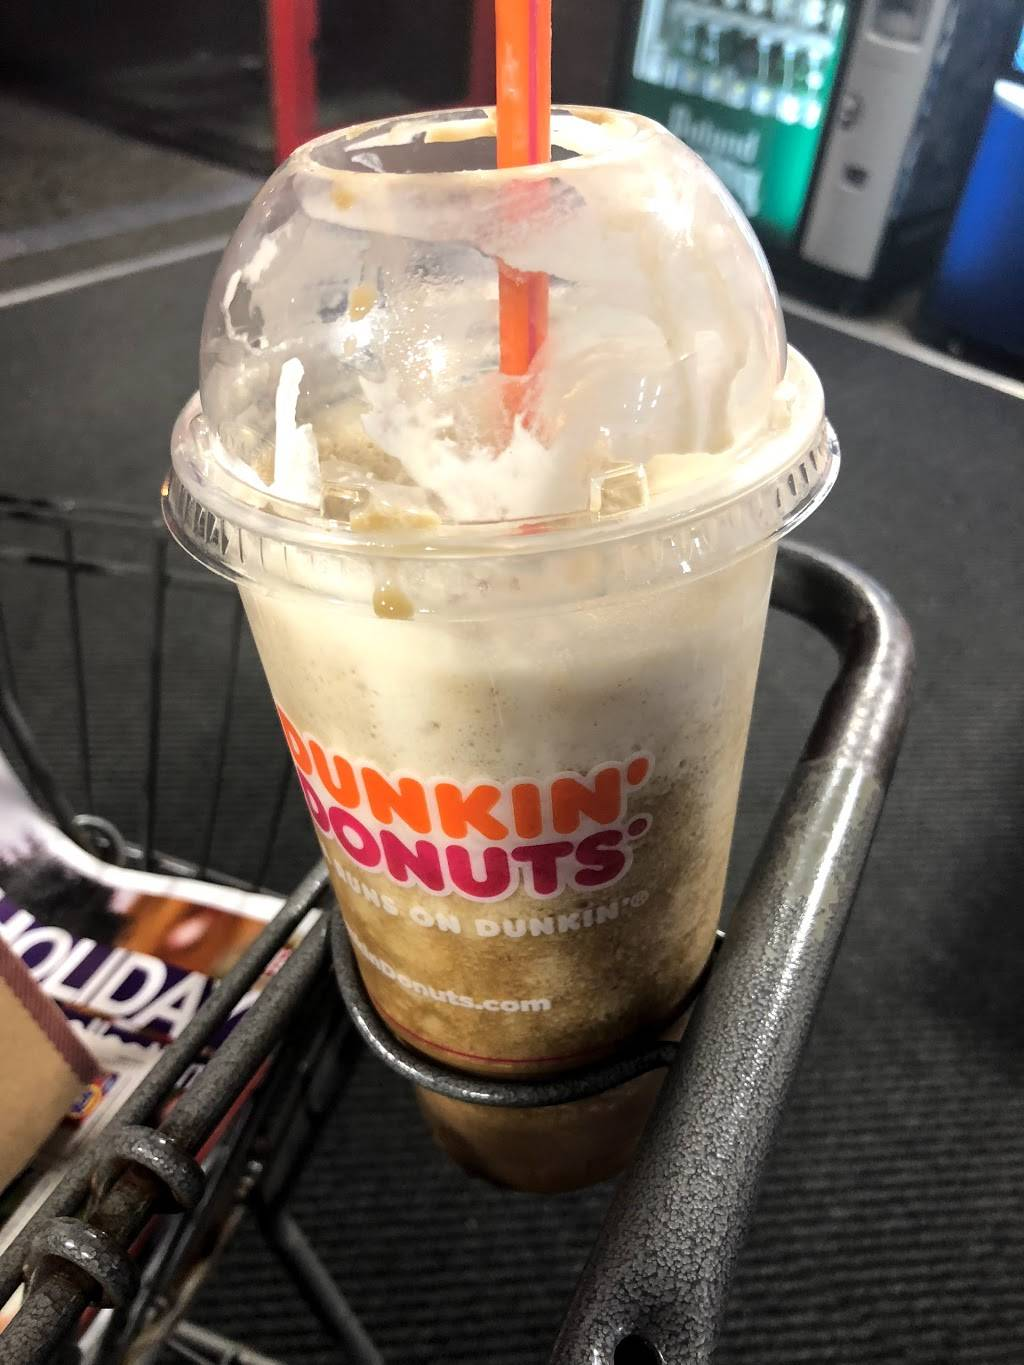 Dunkin Donuts | cafe | 300 NJ-17, East Rutherford, NJ 07073, USA | 2014600941 OR +1 201-460-0941